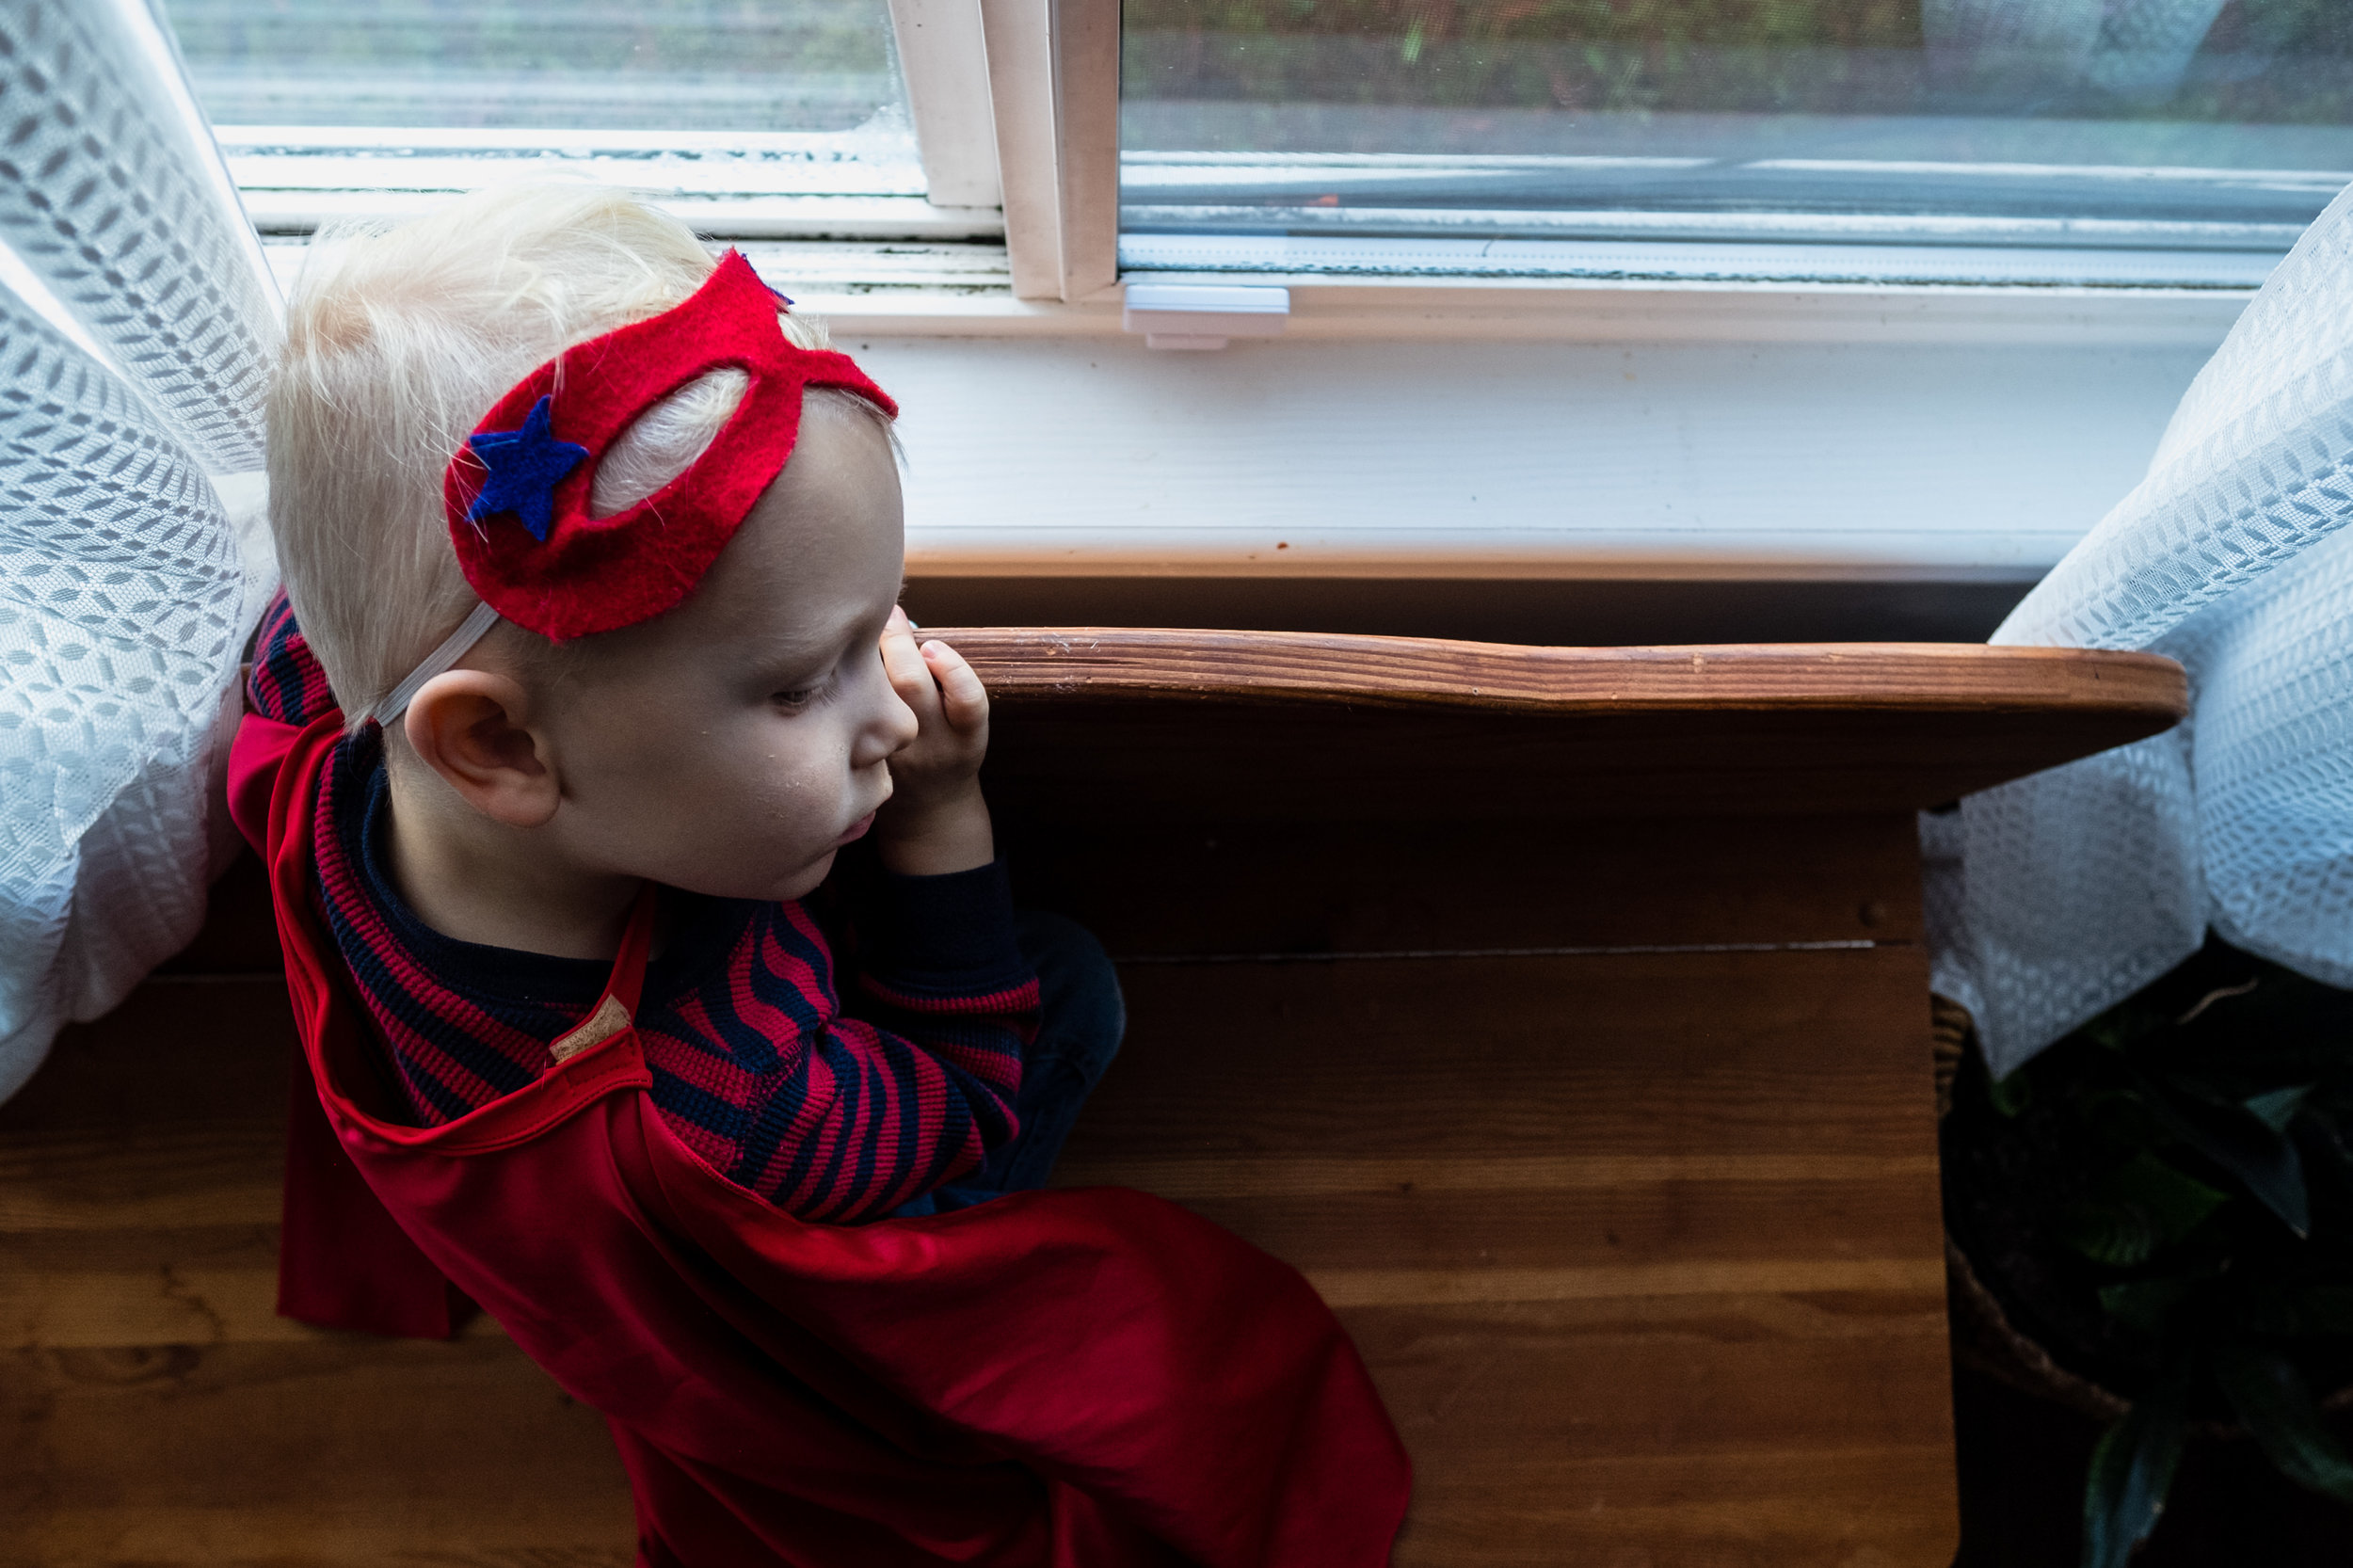 little boy in superhero costume gazing out of window in vancouver canada